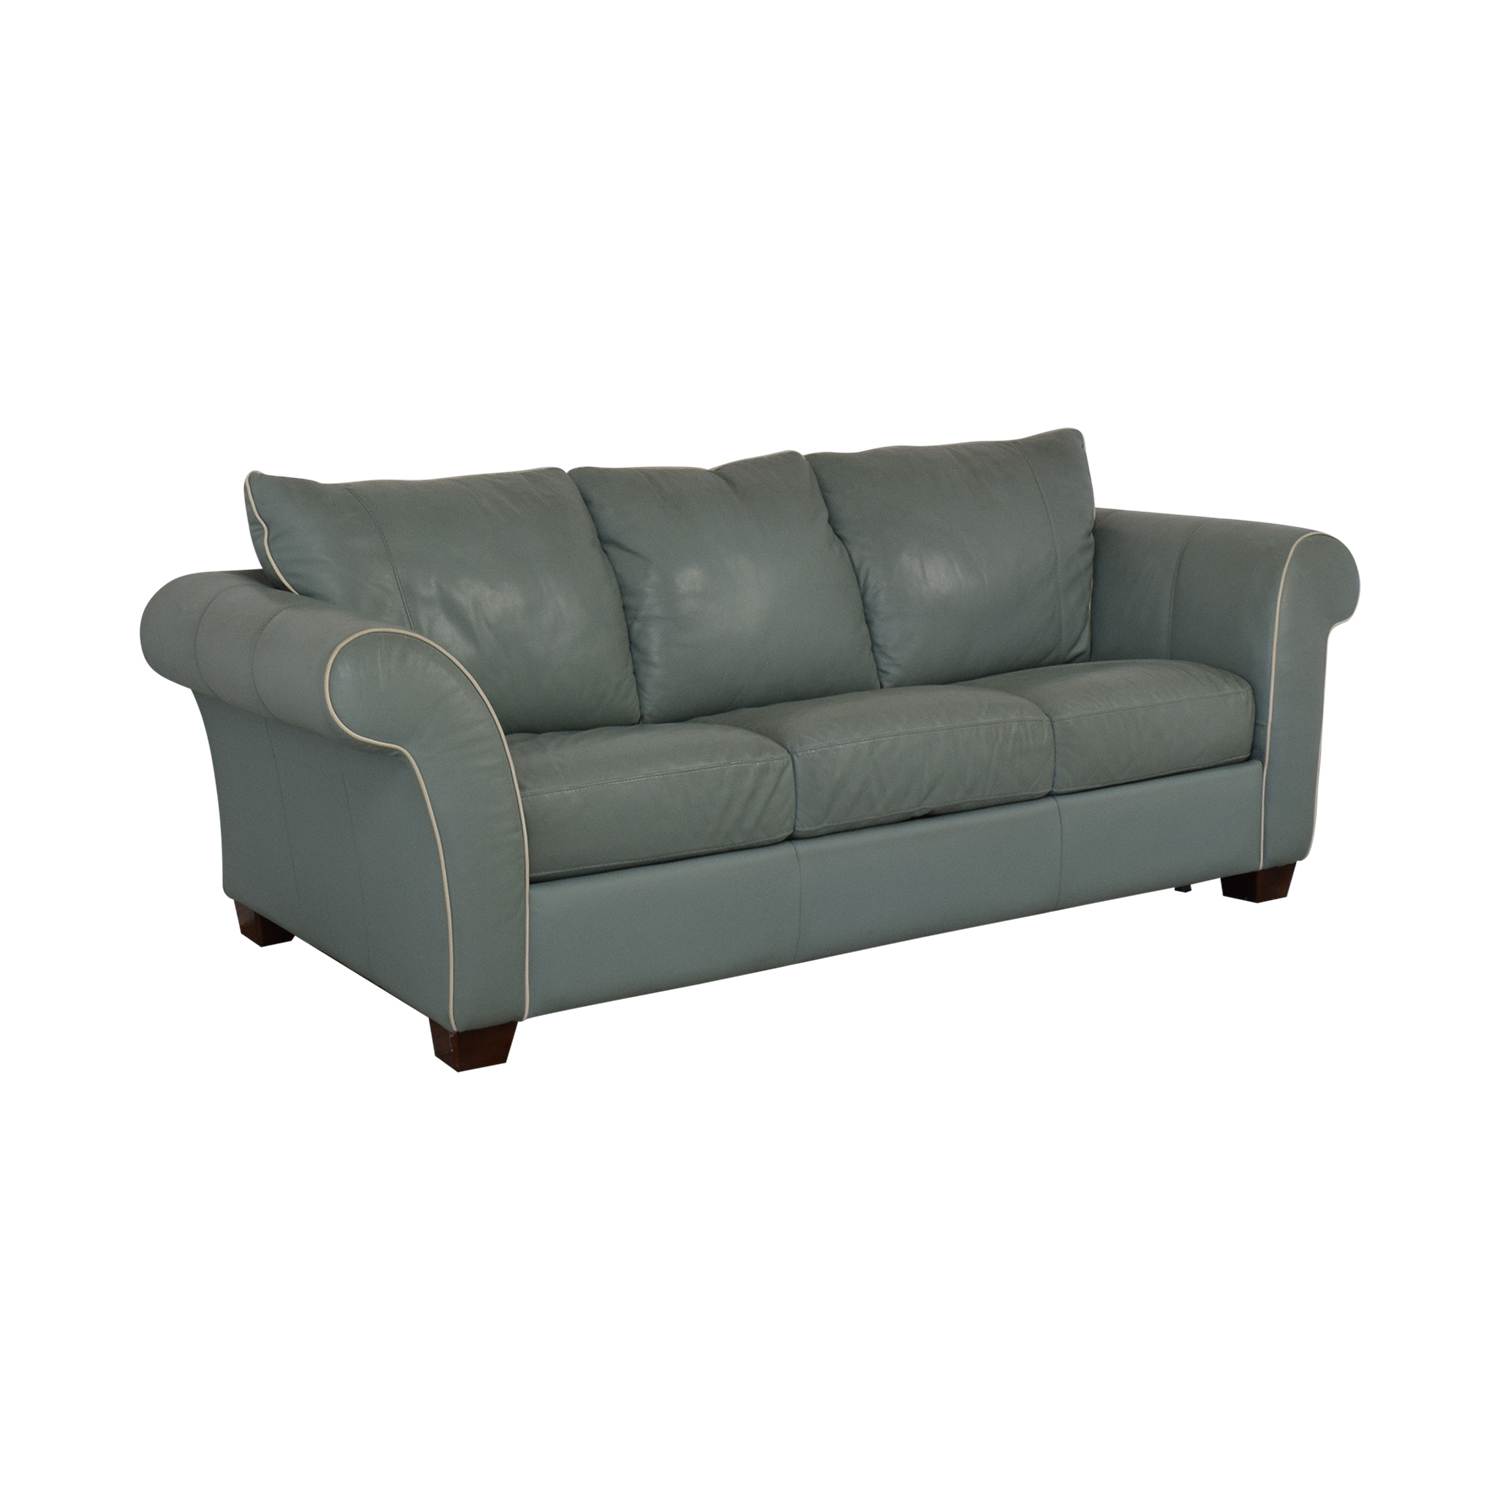 Fabulous 78 Off Italsofa Italsofa Queen Sleeper Sofa Sofas Inzonedesignstudio Interior Chair Design Inzonedesignstudiocom